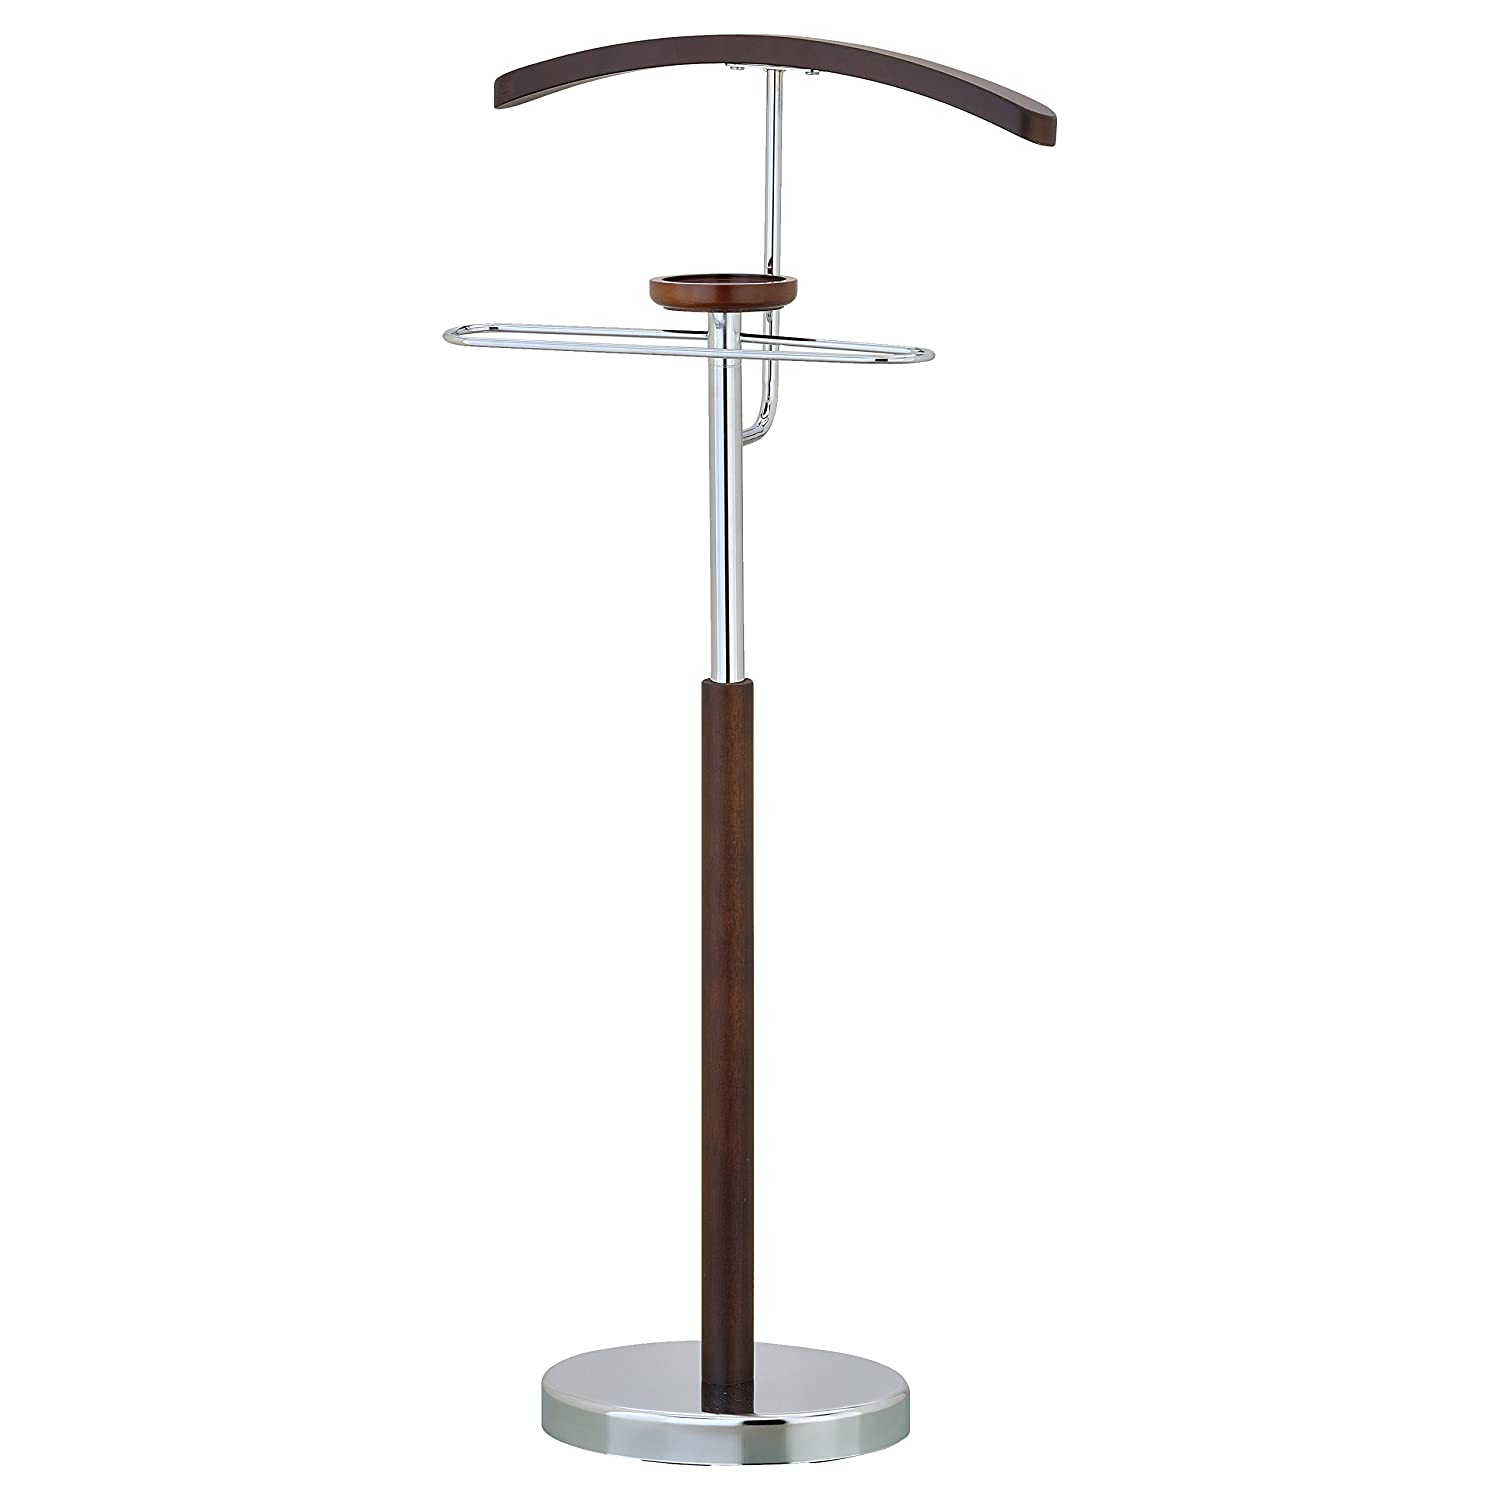 Deluxe Wood & Chrome Suit Valet Stand, Jacket Pant Hanger Accessory Dish MyGift